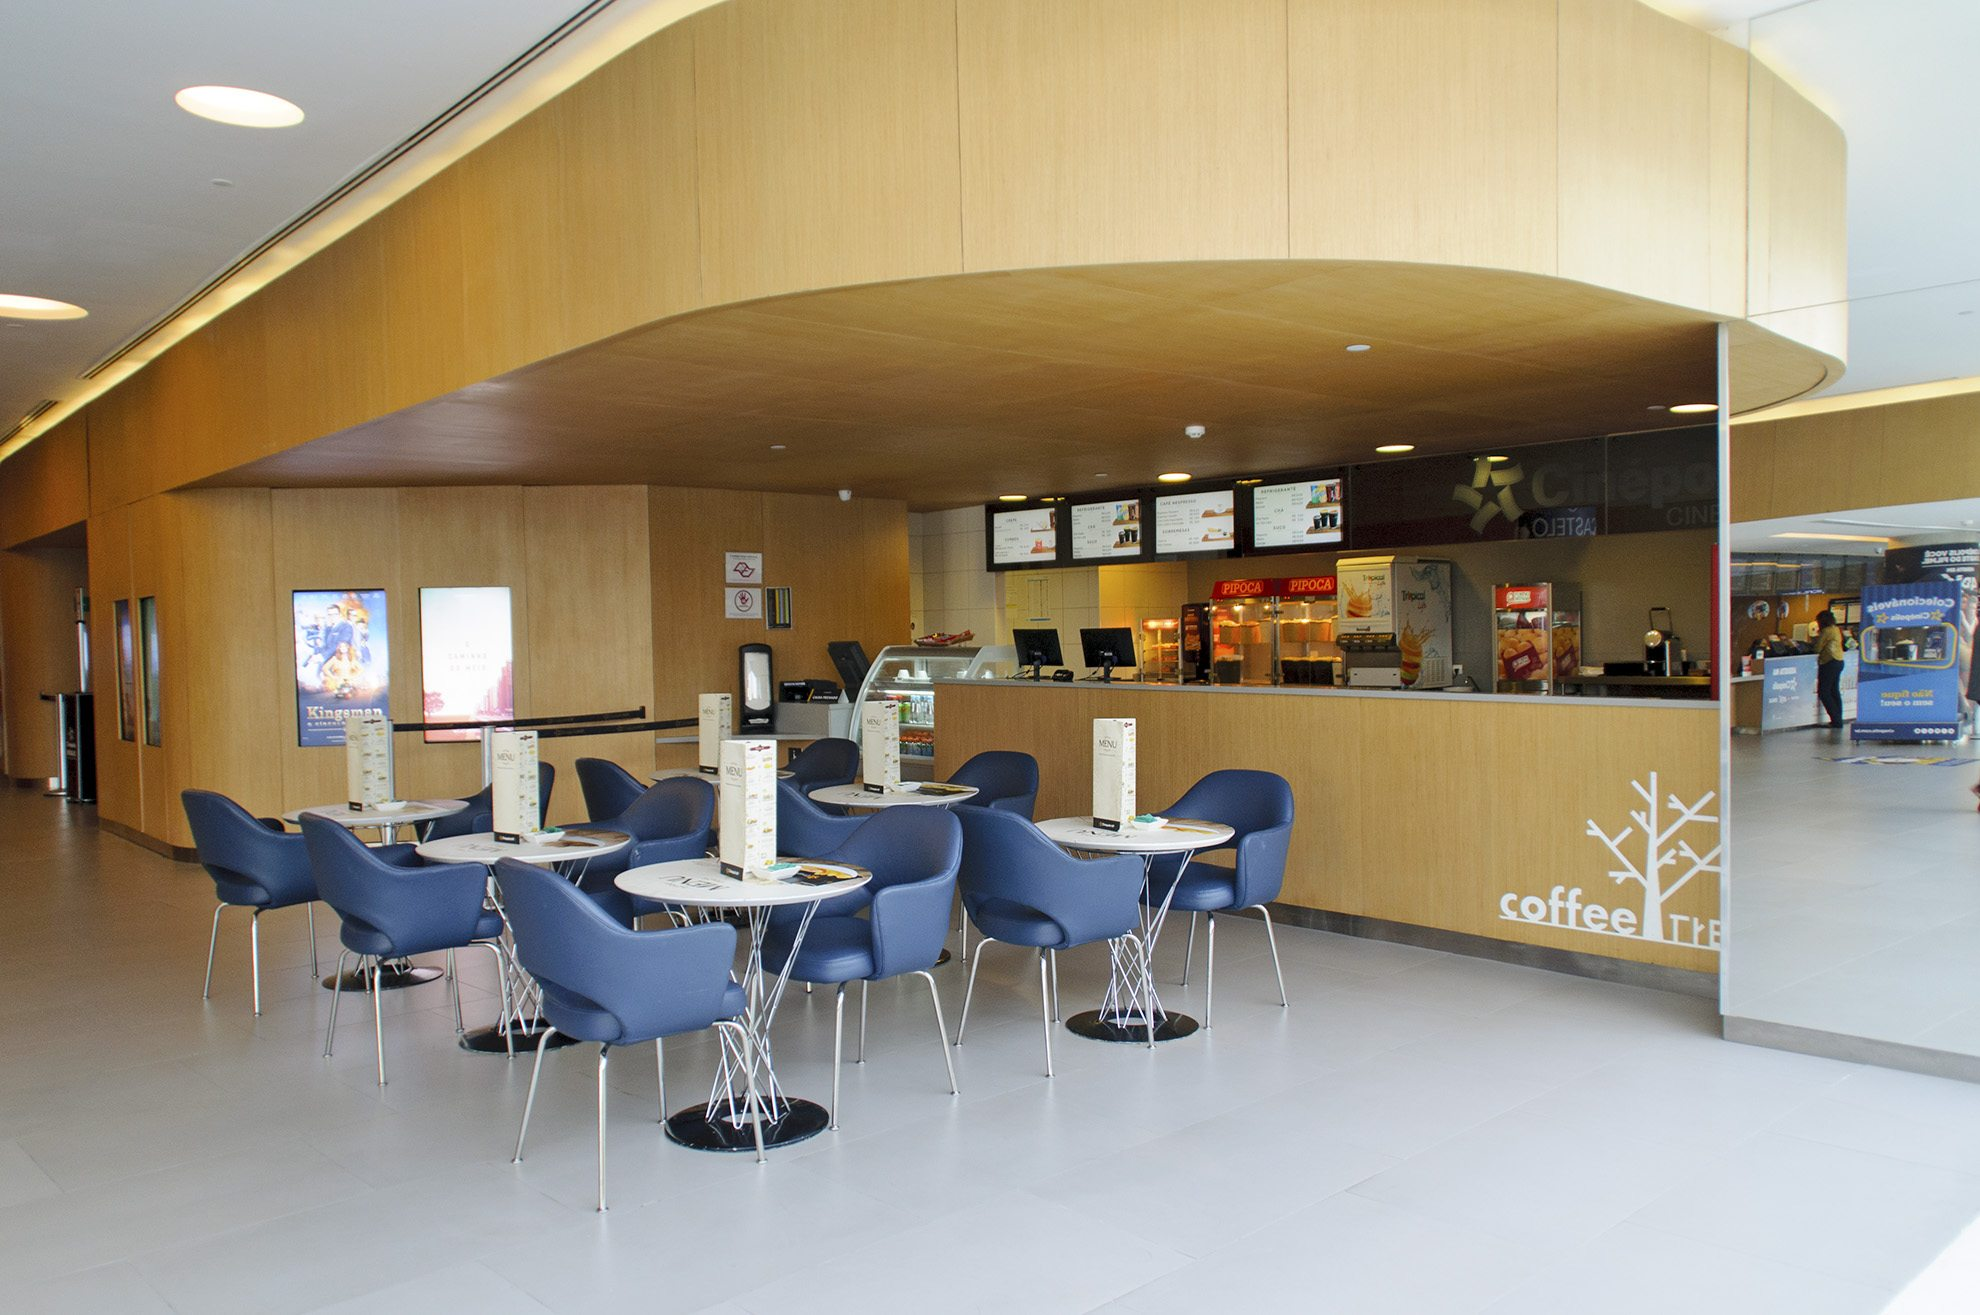 The Coffee Tree at the Cinépolis JK Iguatemi in São Paulo, Brazil